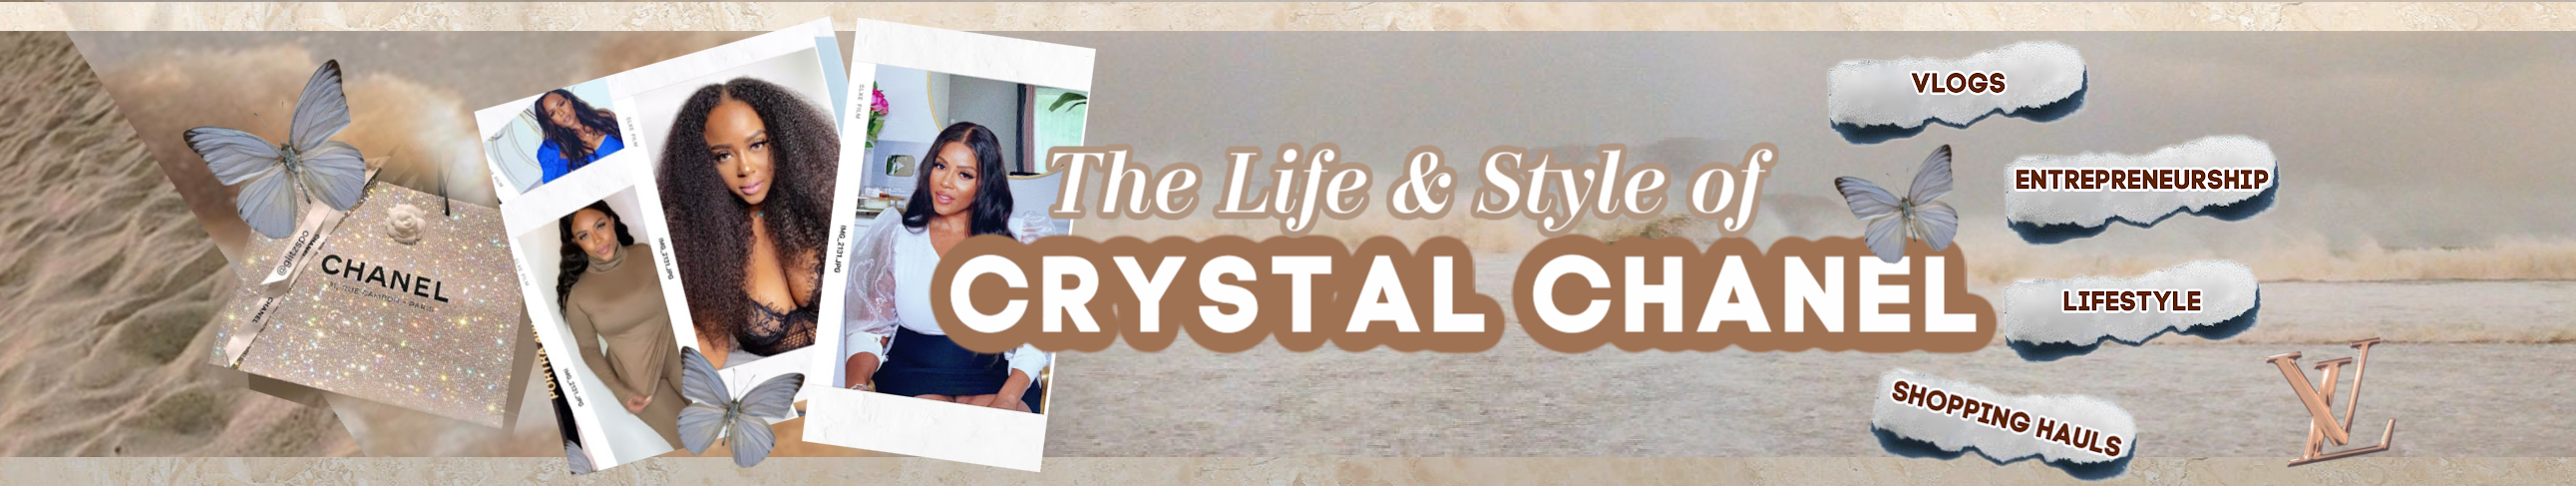 The Life & Style of Crystal Chanel